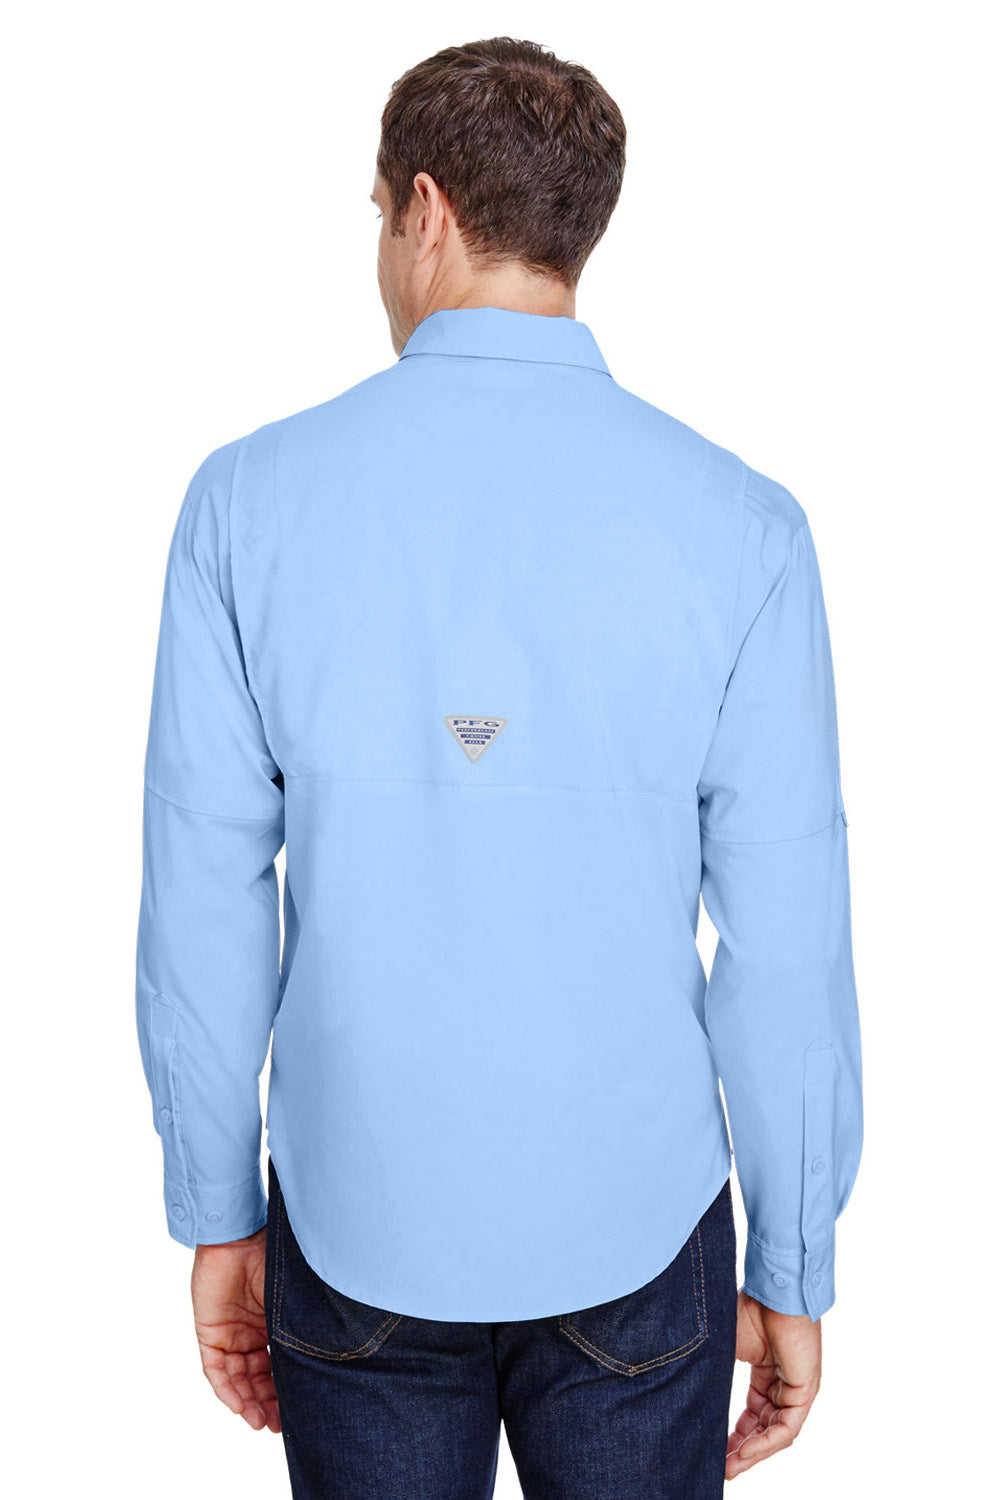 Columbia 7253 Mens Tamiami II Moisture Wicking Long Sleeve Button Down Shirt w/ Double Pockets Sail Blue Back